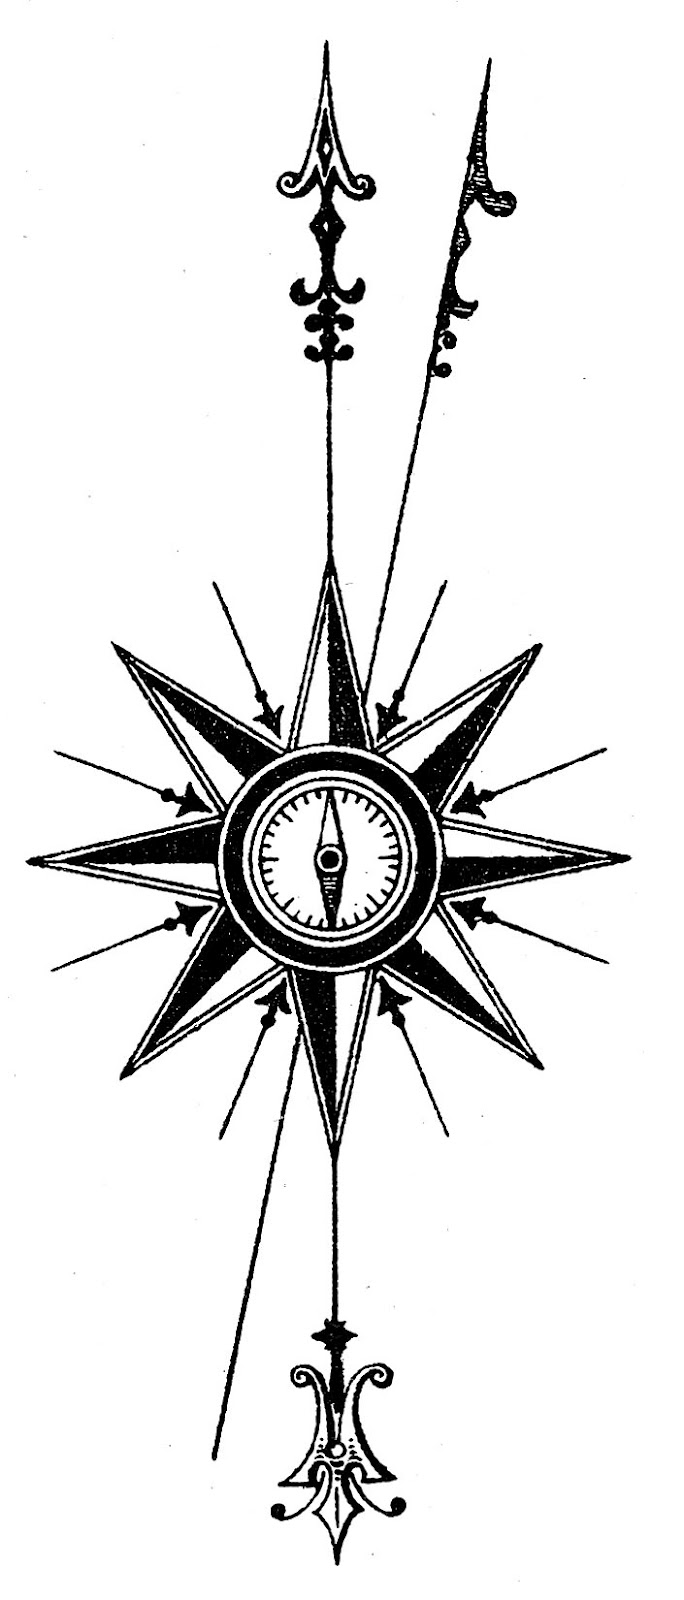 Free vintage nautical cliparts. Steampunk clipart compass rose